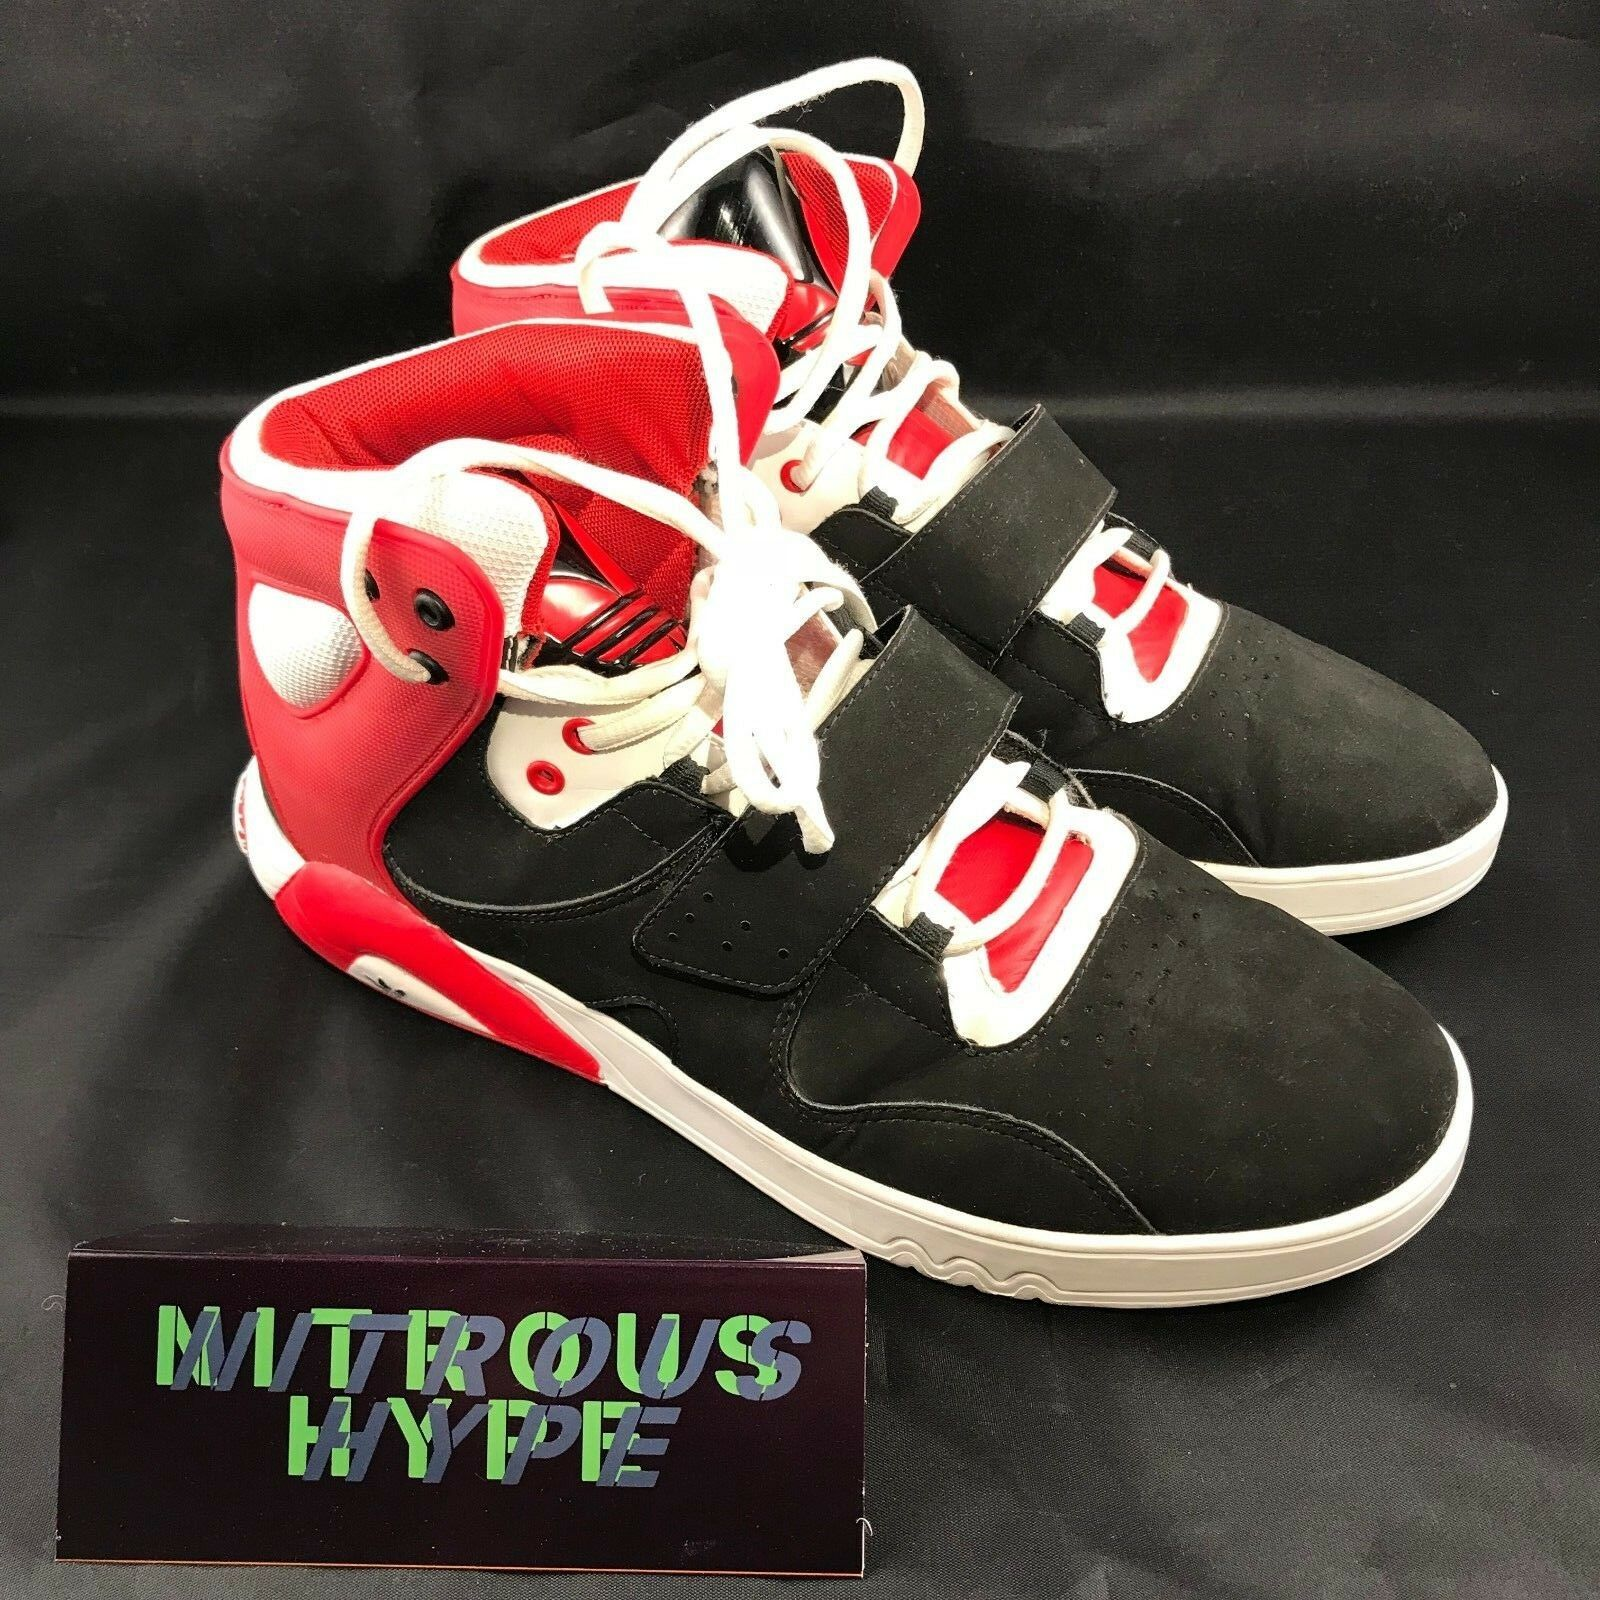 NEW ADIDAS Sample Promo ROUNDHOUSE MID RED Fashion G59031 Sneakers 2018